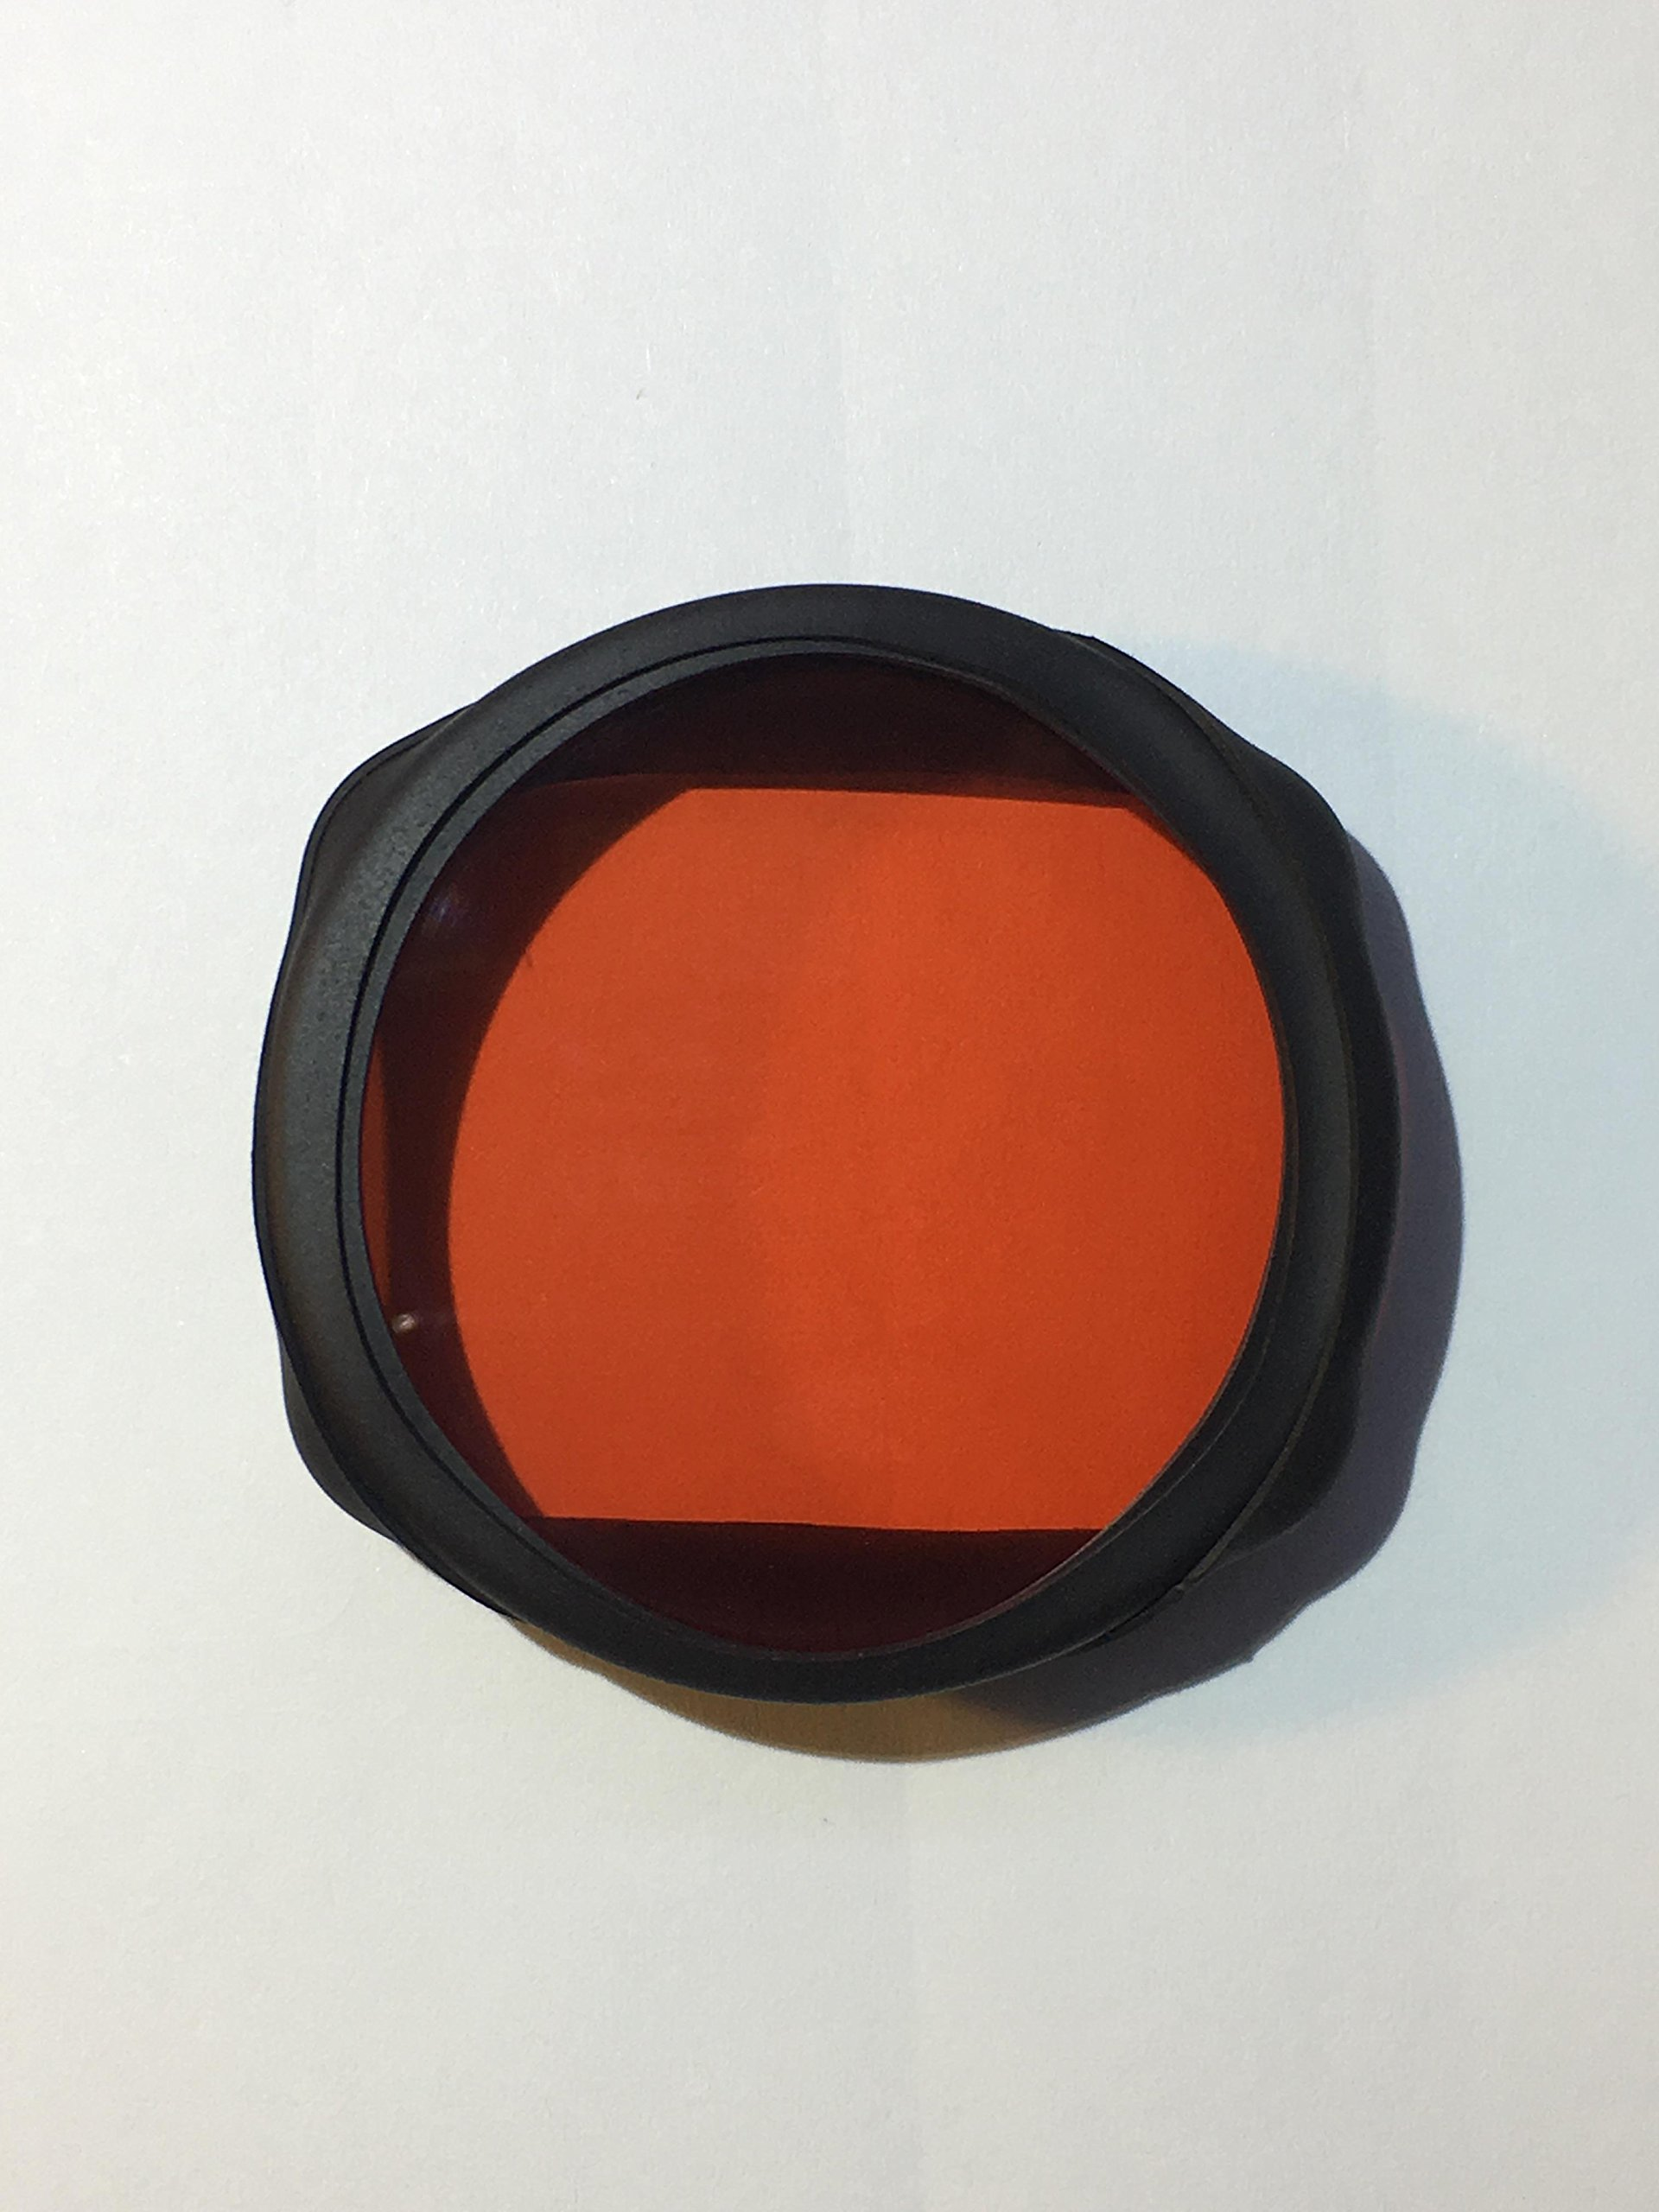 Red Filter Underwater Color Correction Press On for Sony FDR-X3000 AS300 AS50 Waterproof Divehousing by RageCams